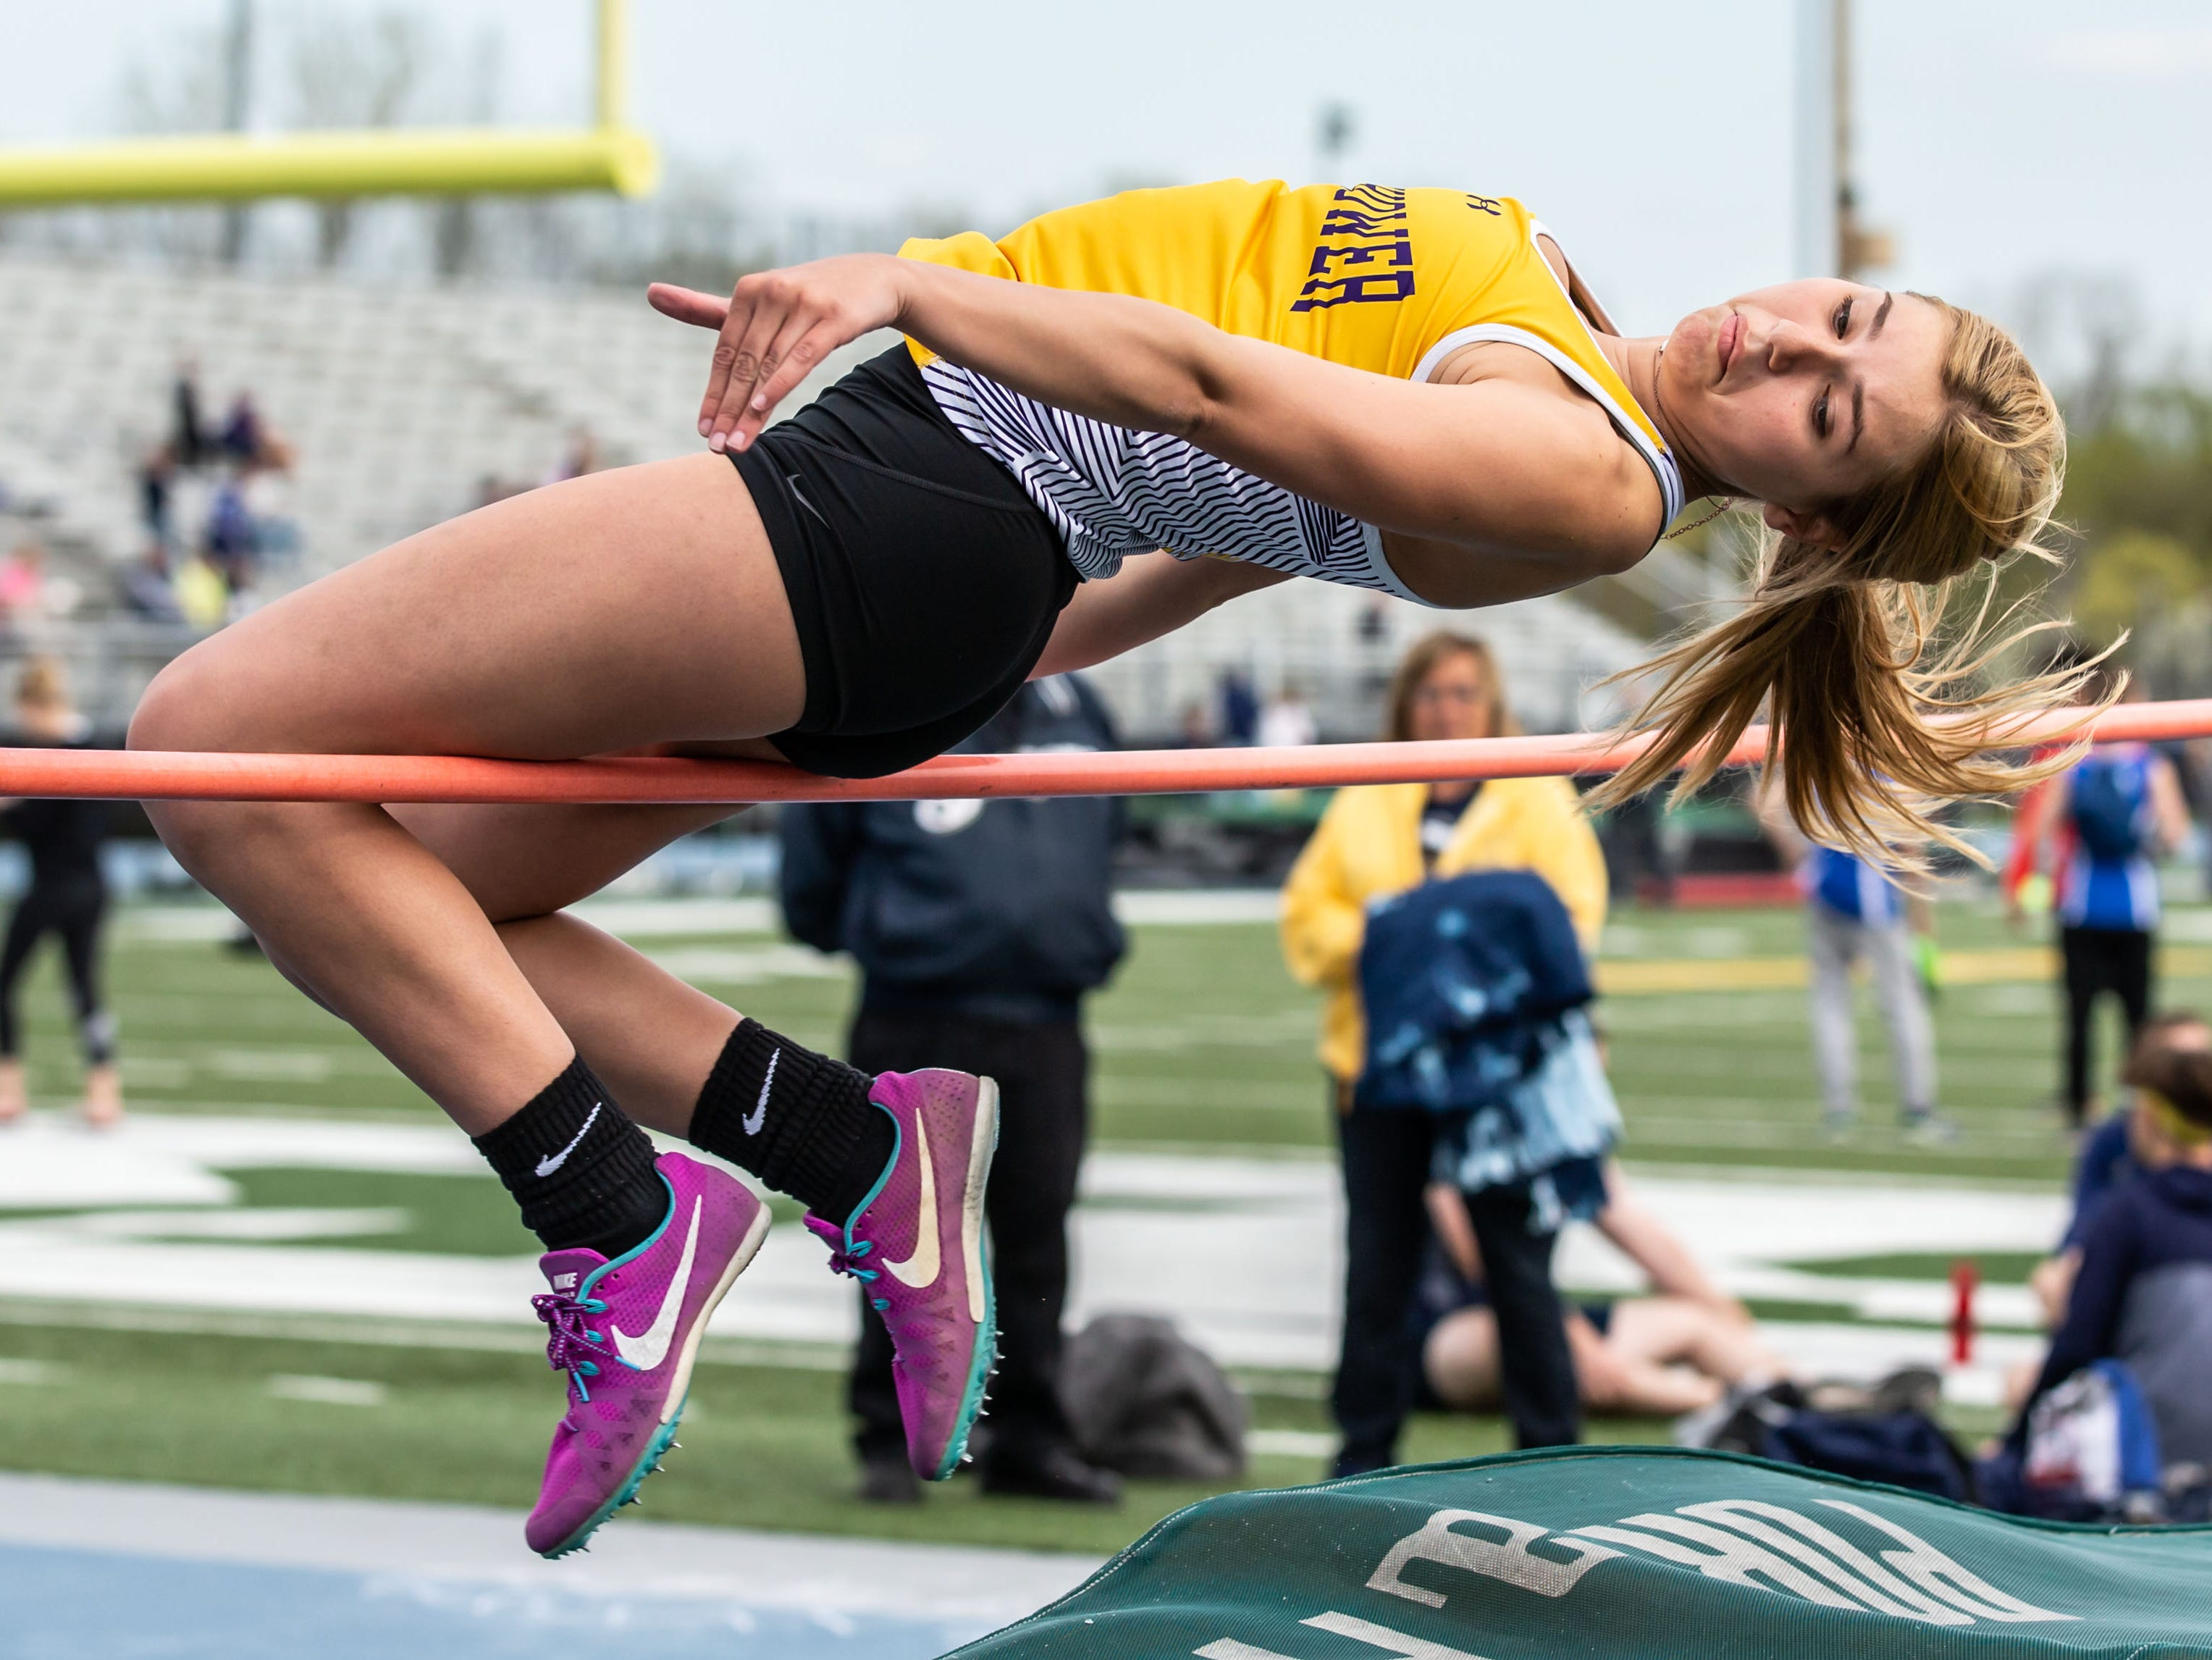 New Berlin Eisenhower's Kiara Mckowen competes in the high jump at the Woodland Conference Track and Field Championships in West Allis on Tuesday, May 14, 2019.